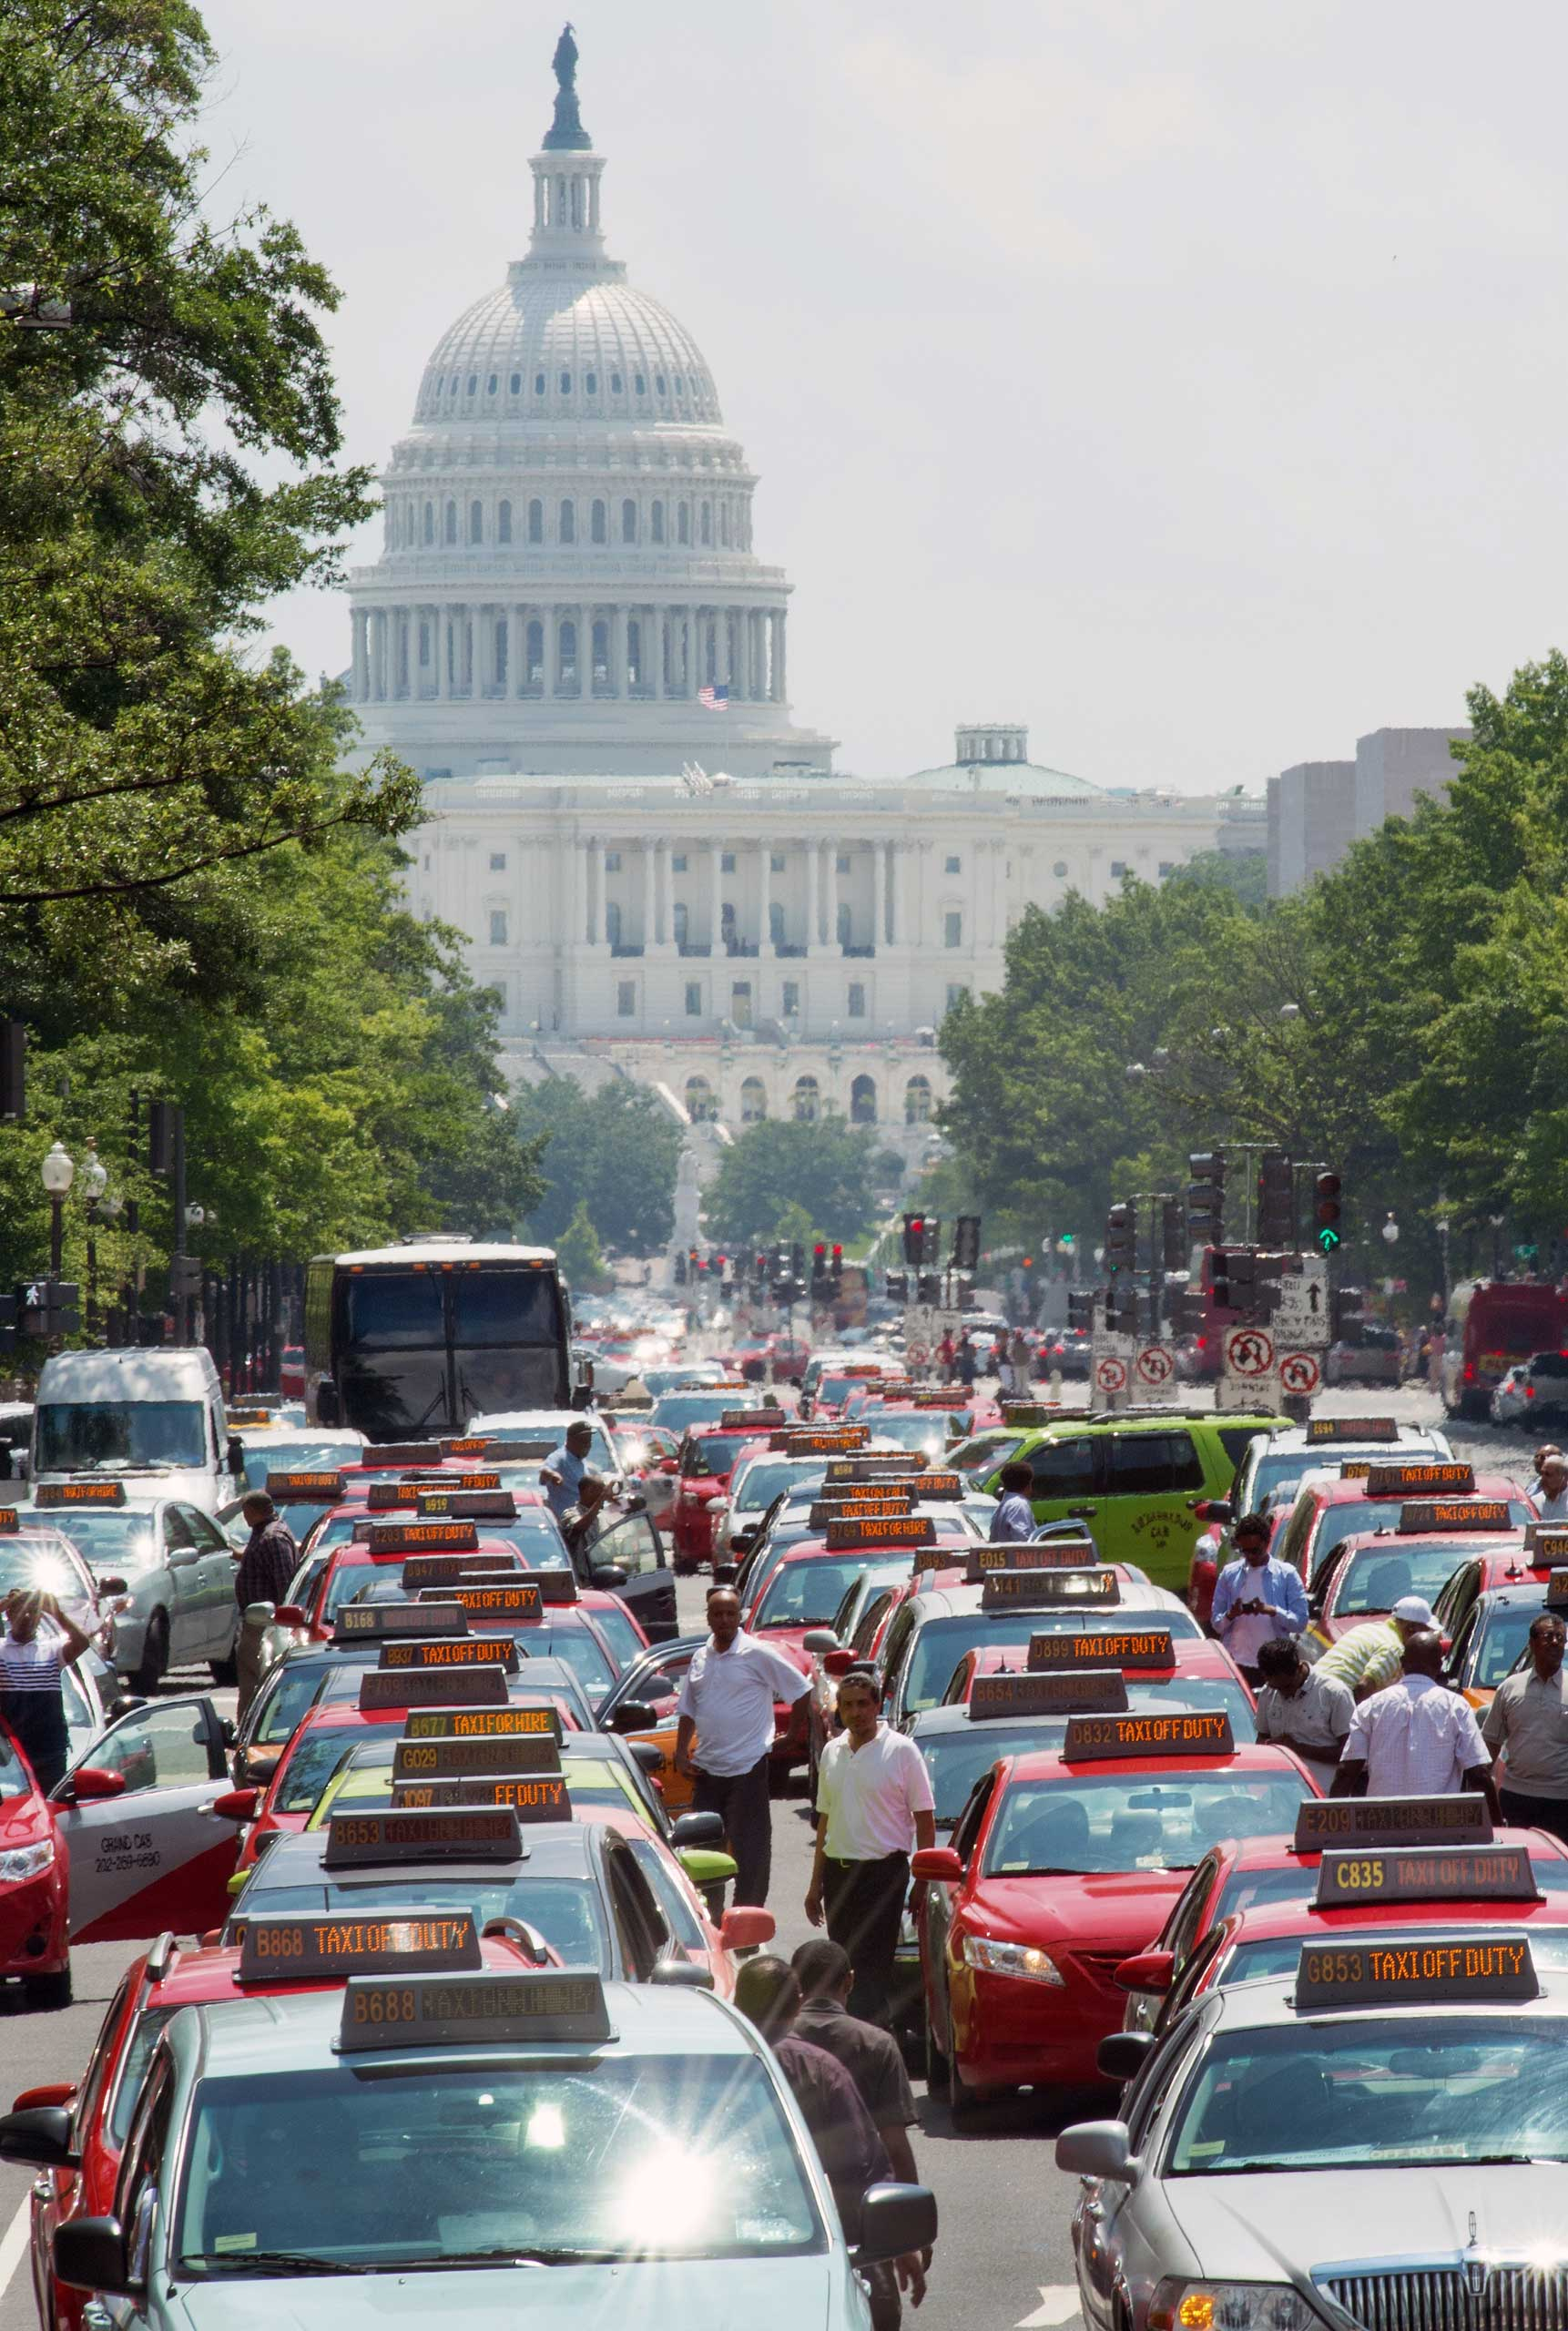 Taxi drivers park their cars and honk the horn in protest on Pennsylvania Avenue, bringing street traffic to a stop as they demand an end to ride sharing services such as Uber X and Lyft on June 25, 2014, in Washington.